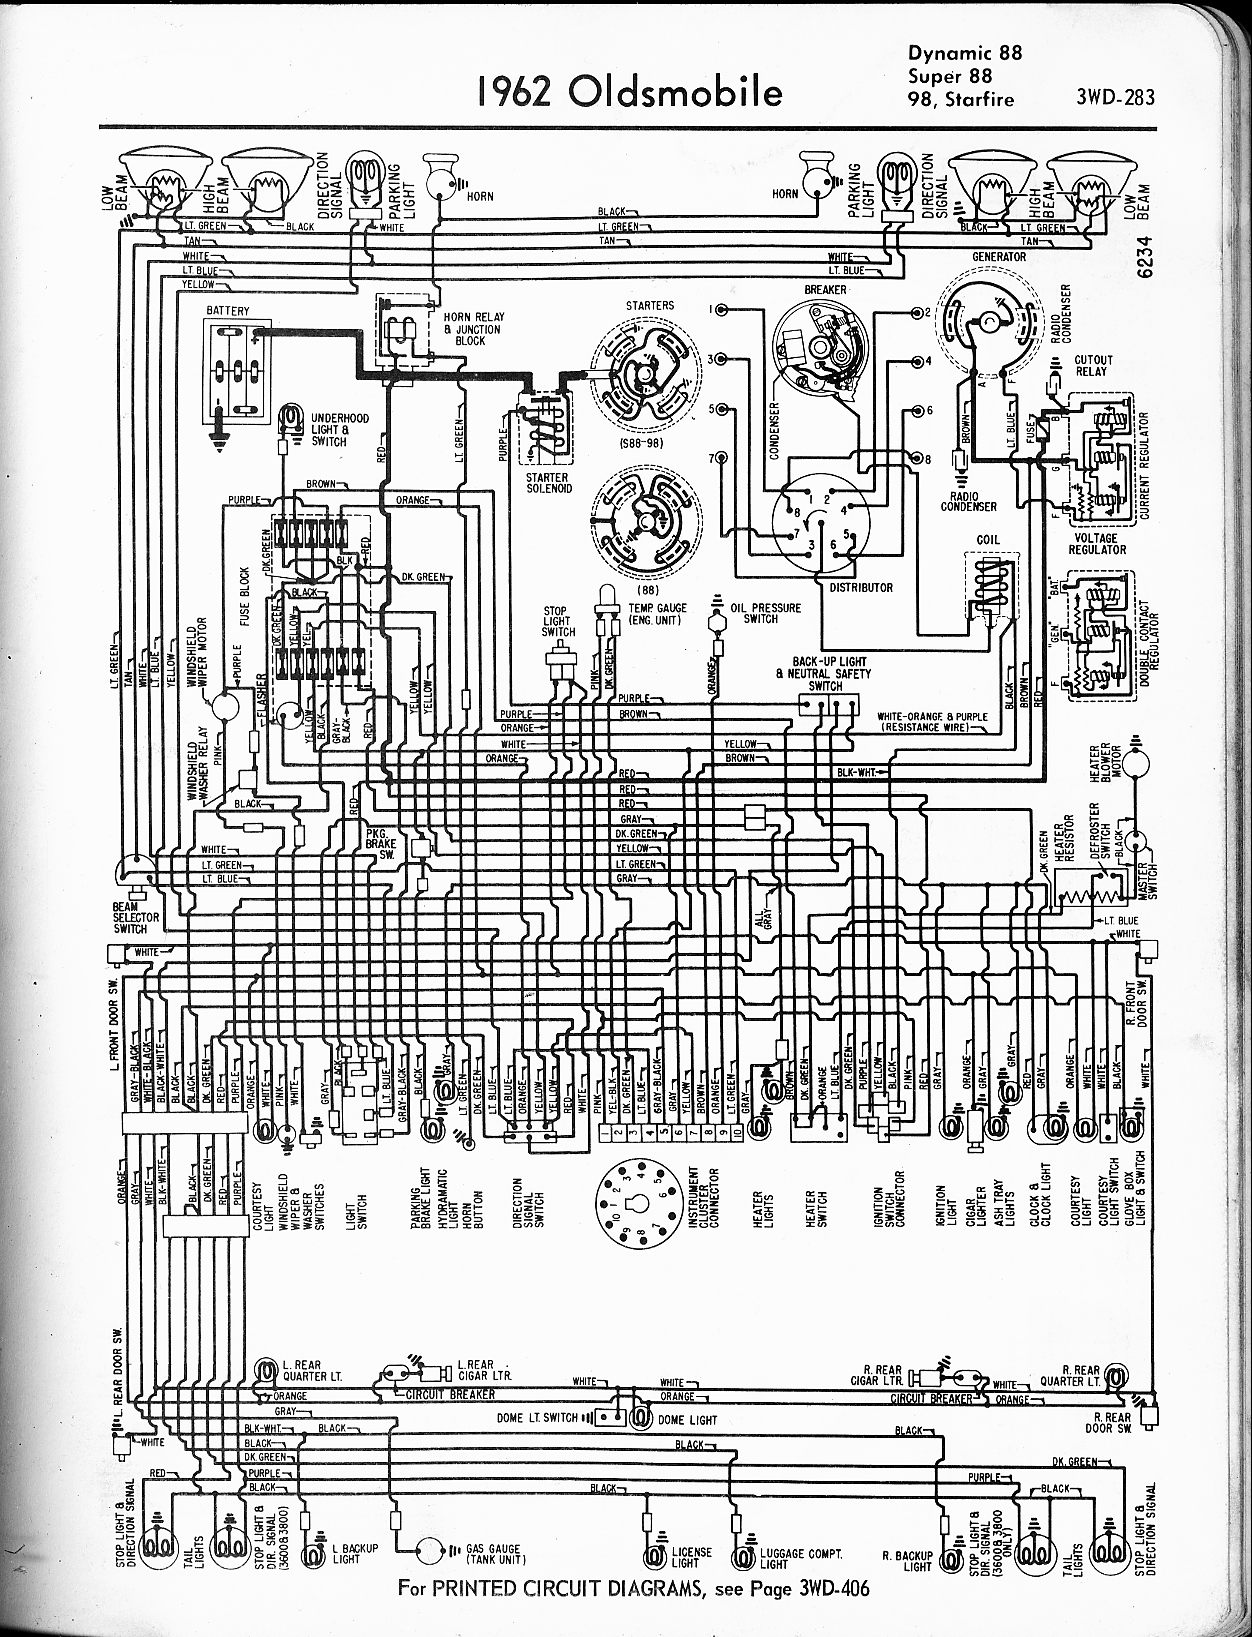 Dynamic wiring manual various owner manual guide oldsmobile wiring diagrams the old car manual project rh oldcarmanualproject com moeller wiring manual ford wiring manuals swarovskicordoba Choice Image